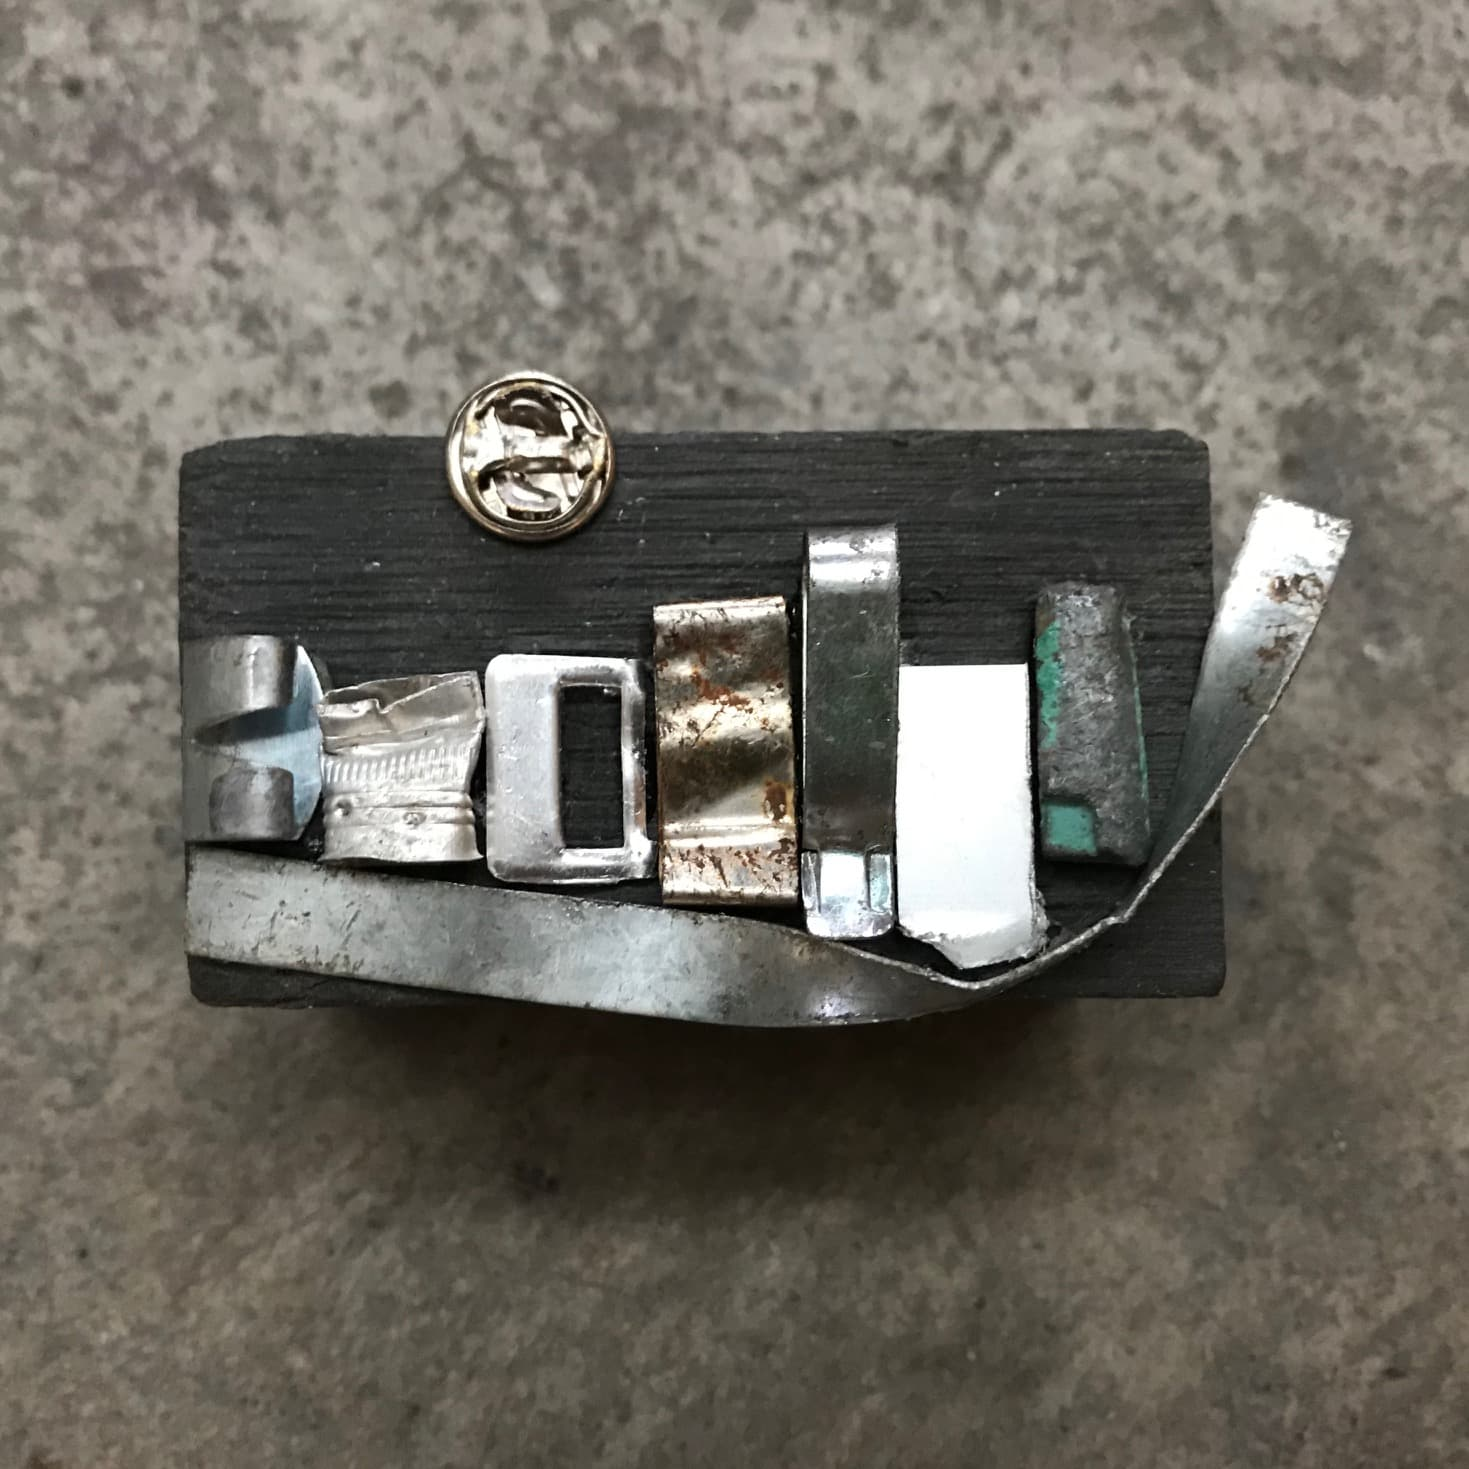 Silver City 9 – Miniature Cityscape By NancyDee Sculptures